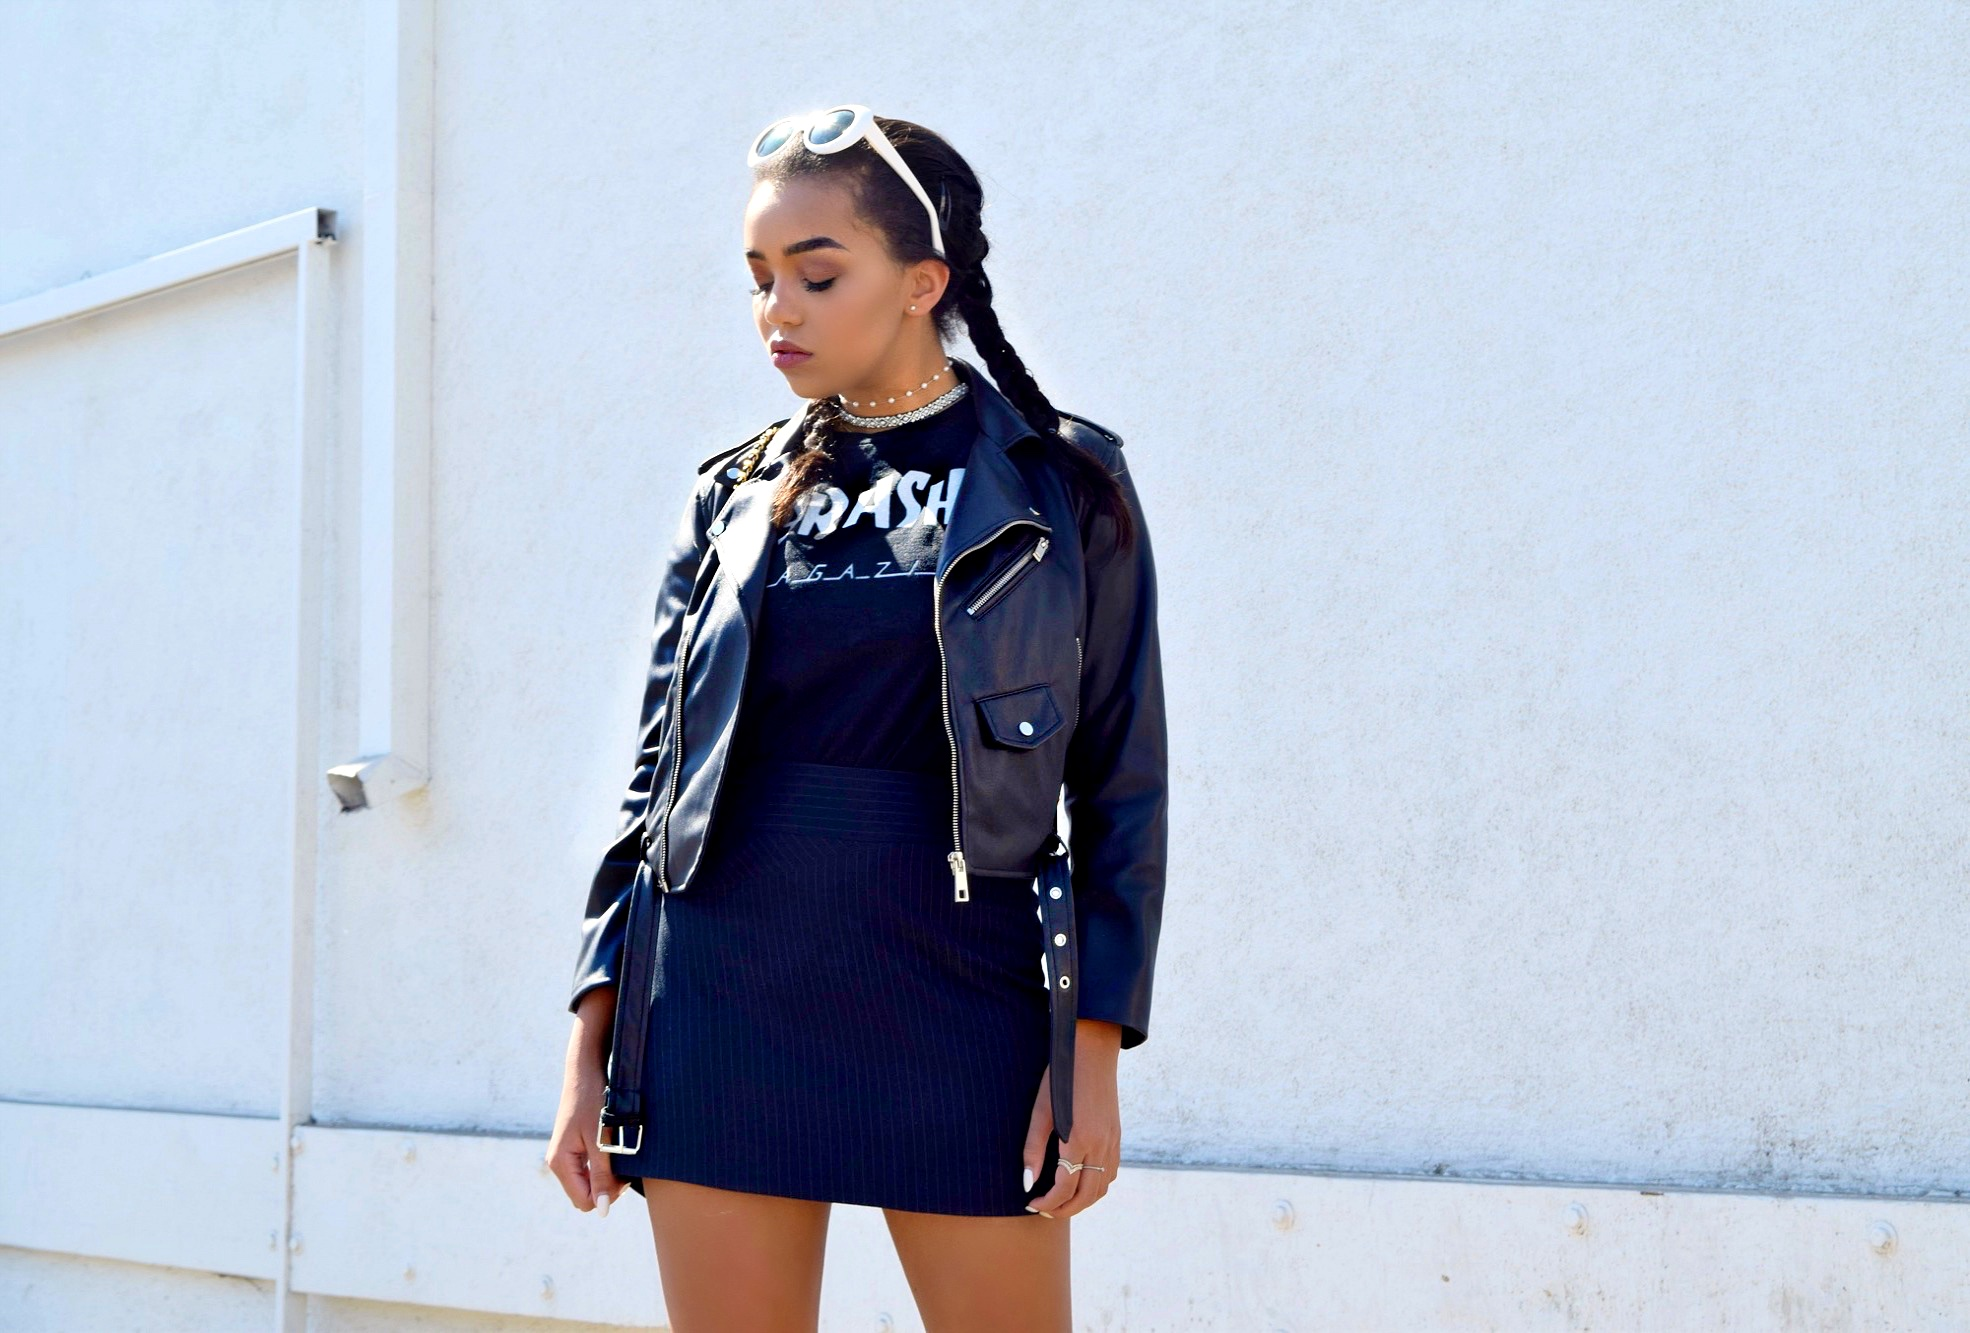 The Thrasher Trend, Spring/Summer Los Angeles Street Style: To Style, With Love